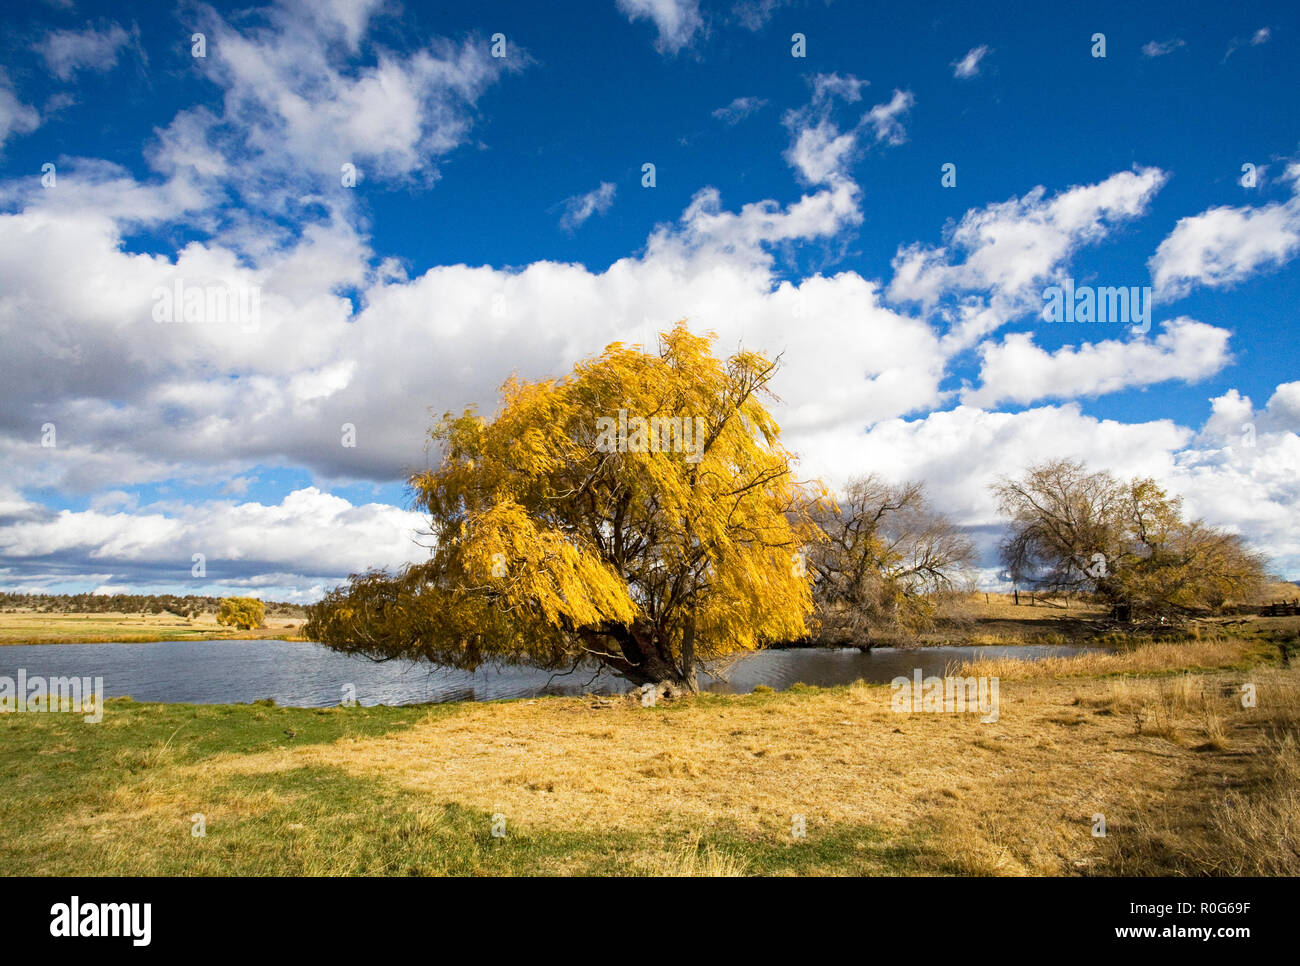 A beautiful weeping willow tree changing from green to gold on an autumn day in October in a remote ranch pasture in central Oregon. Stock Photo